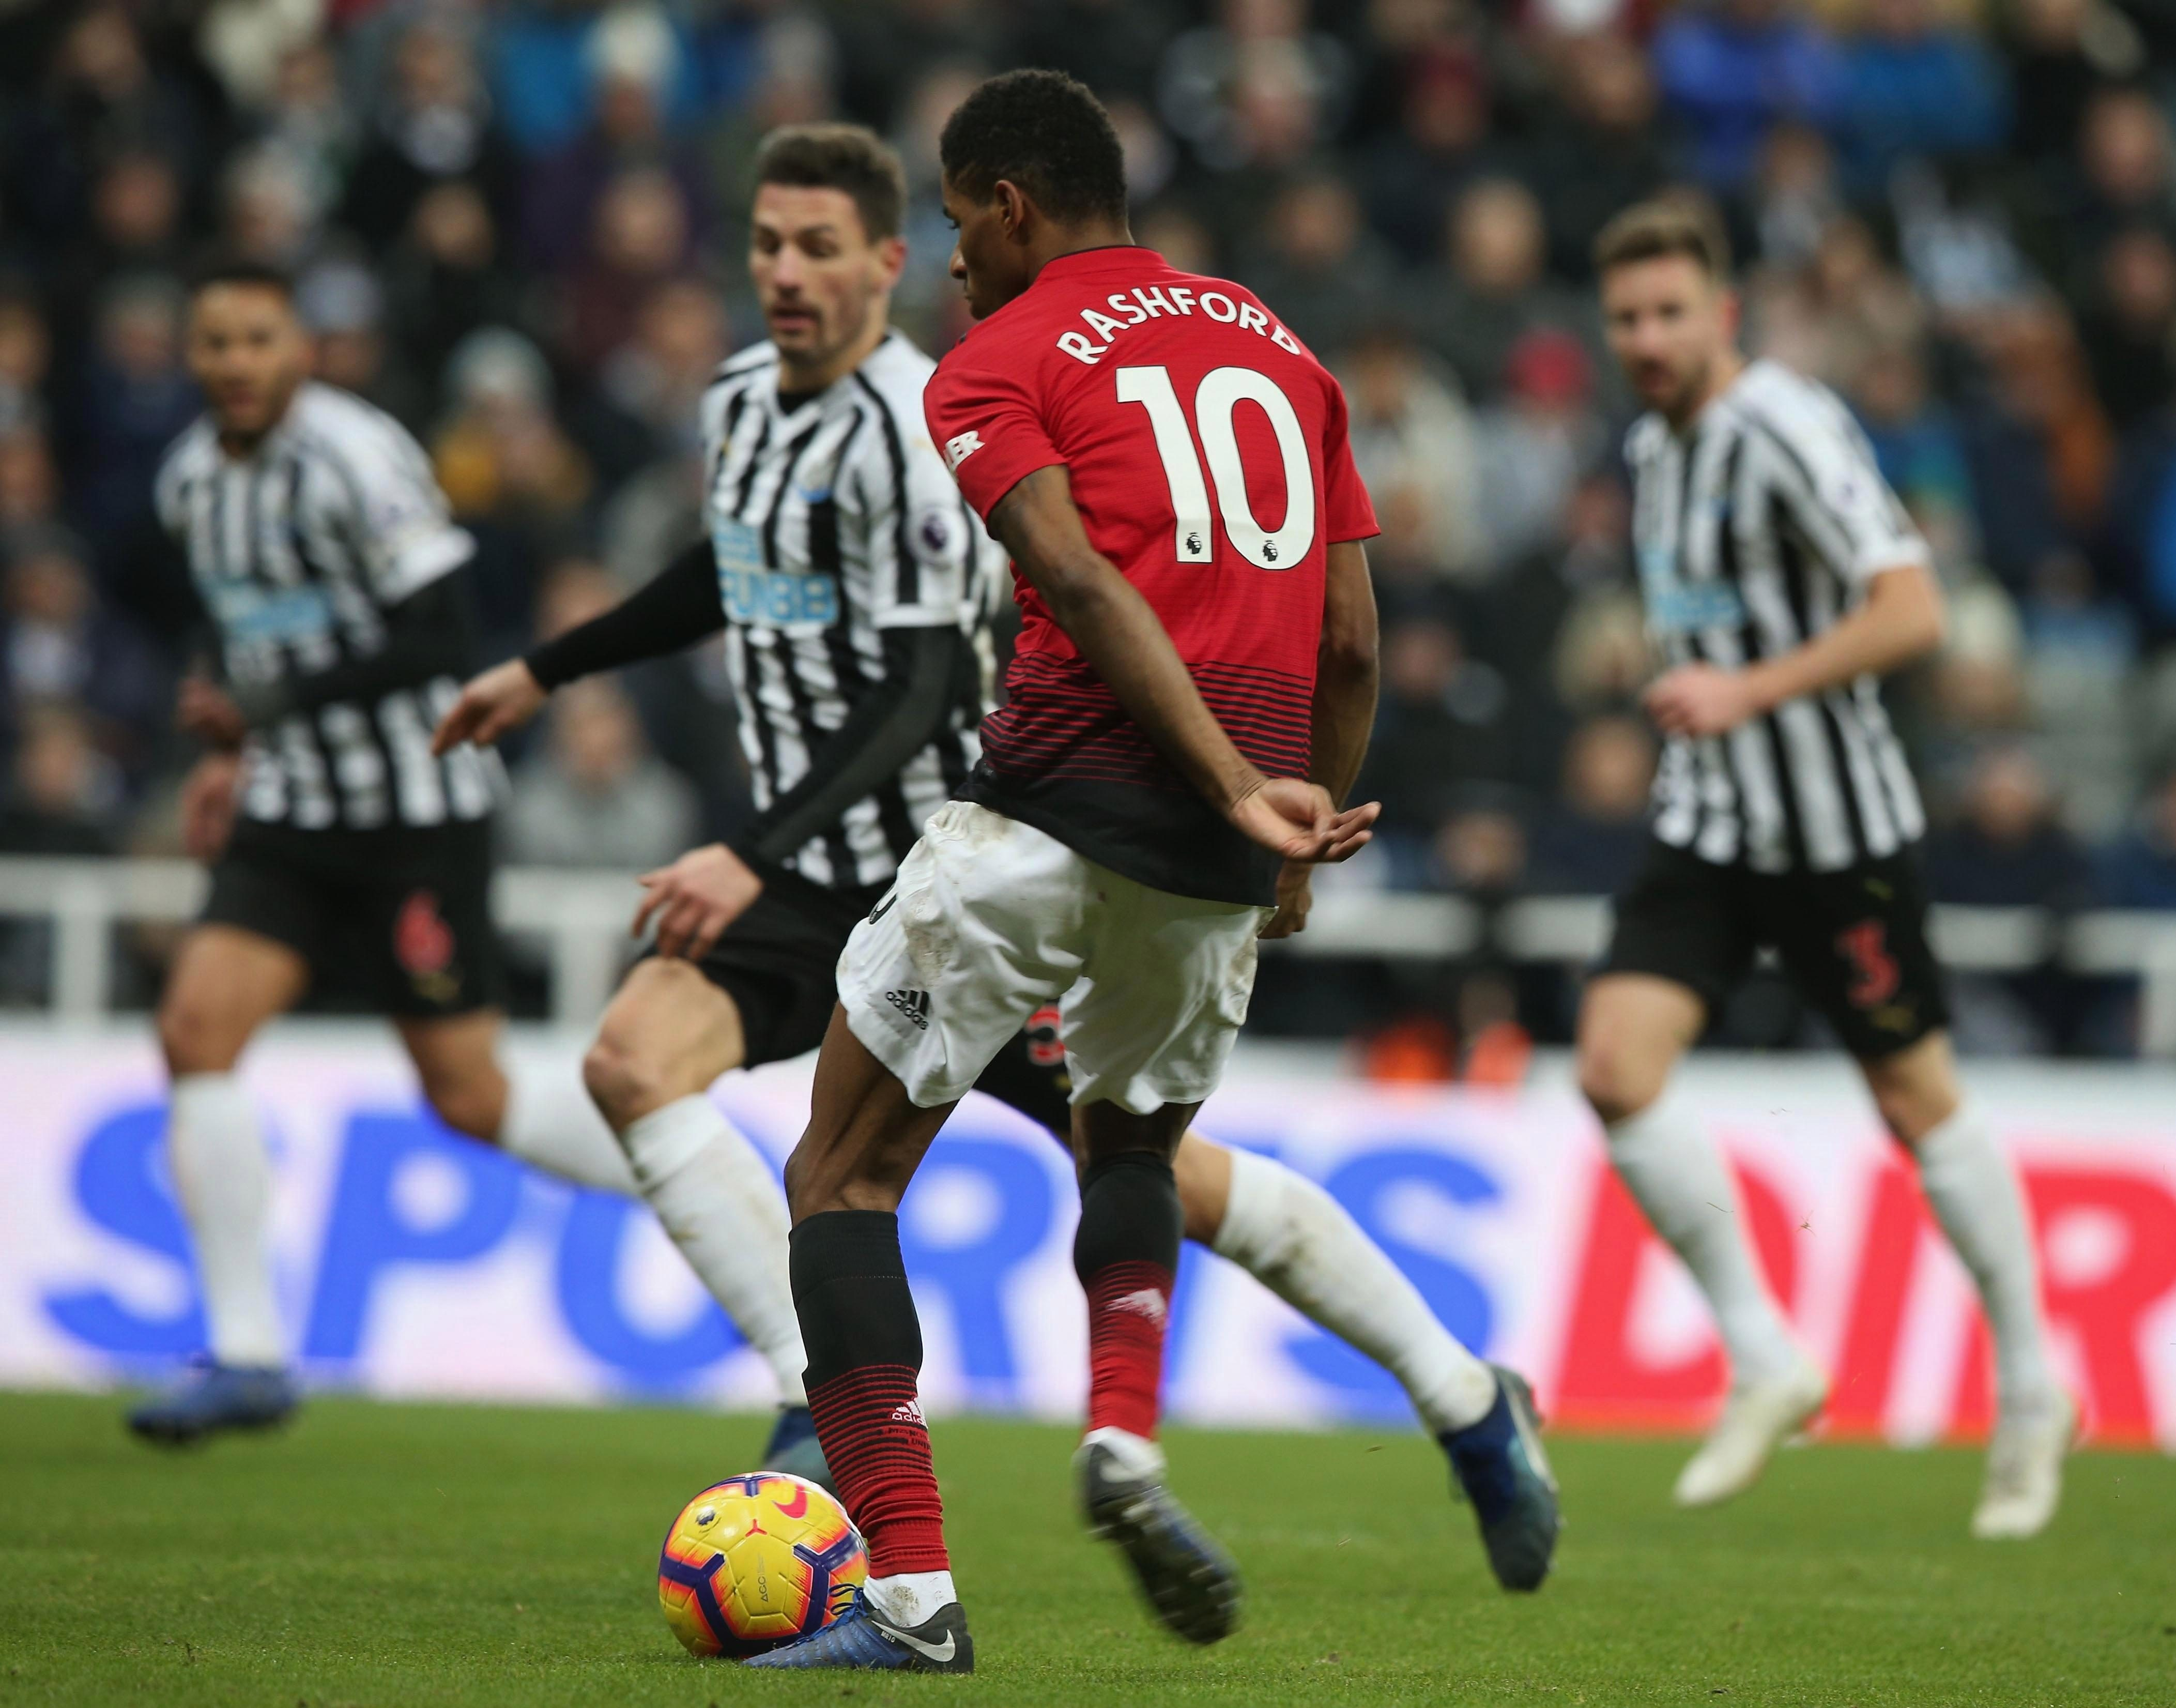 Rashford has spoken publicly about the finishing practice he's received under his new manager